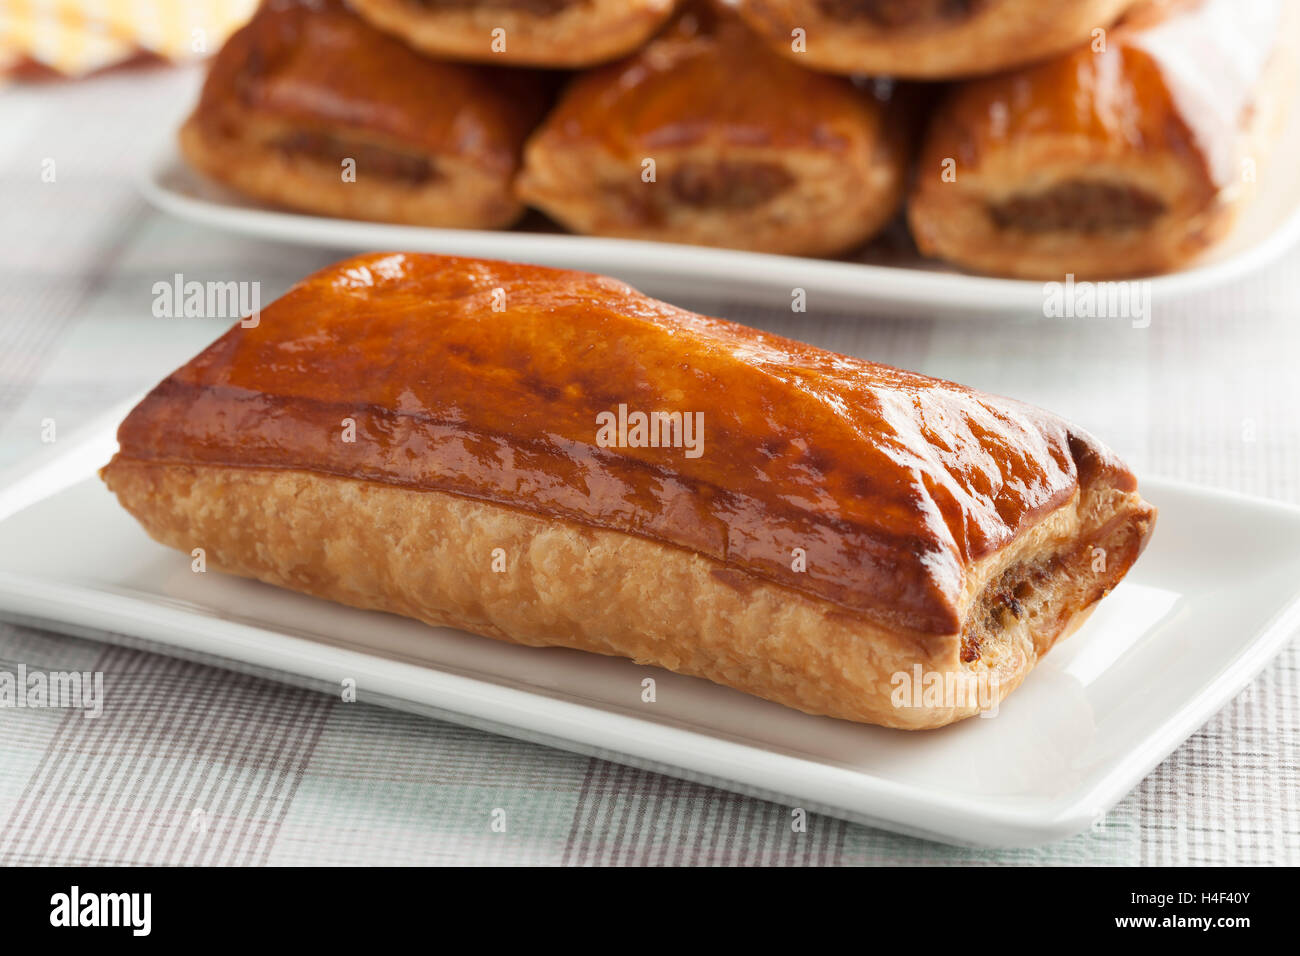 Fresh baked sausage roll, saucijzenbroodje, close up - Stock Image